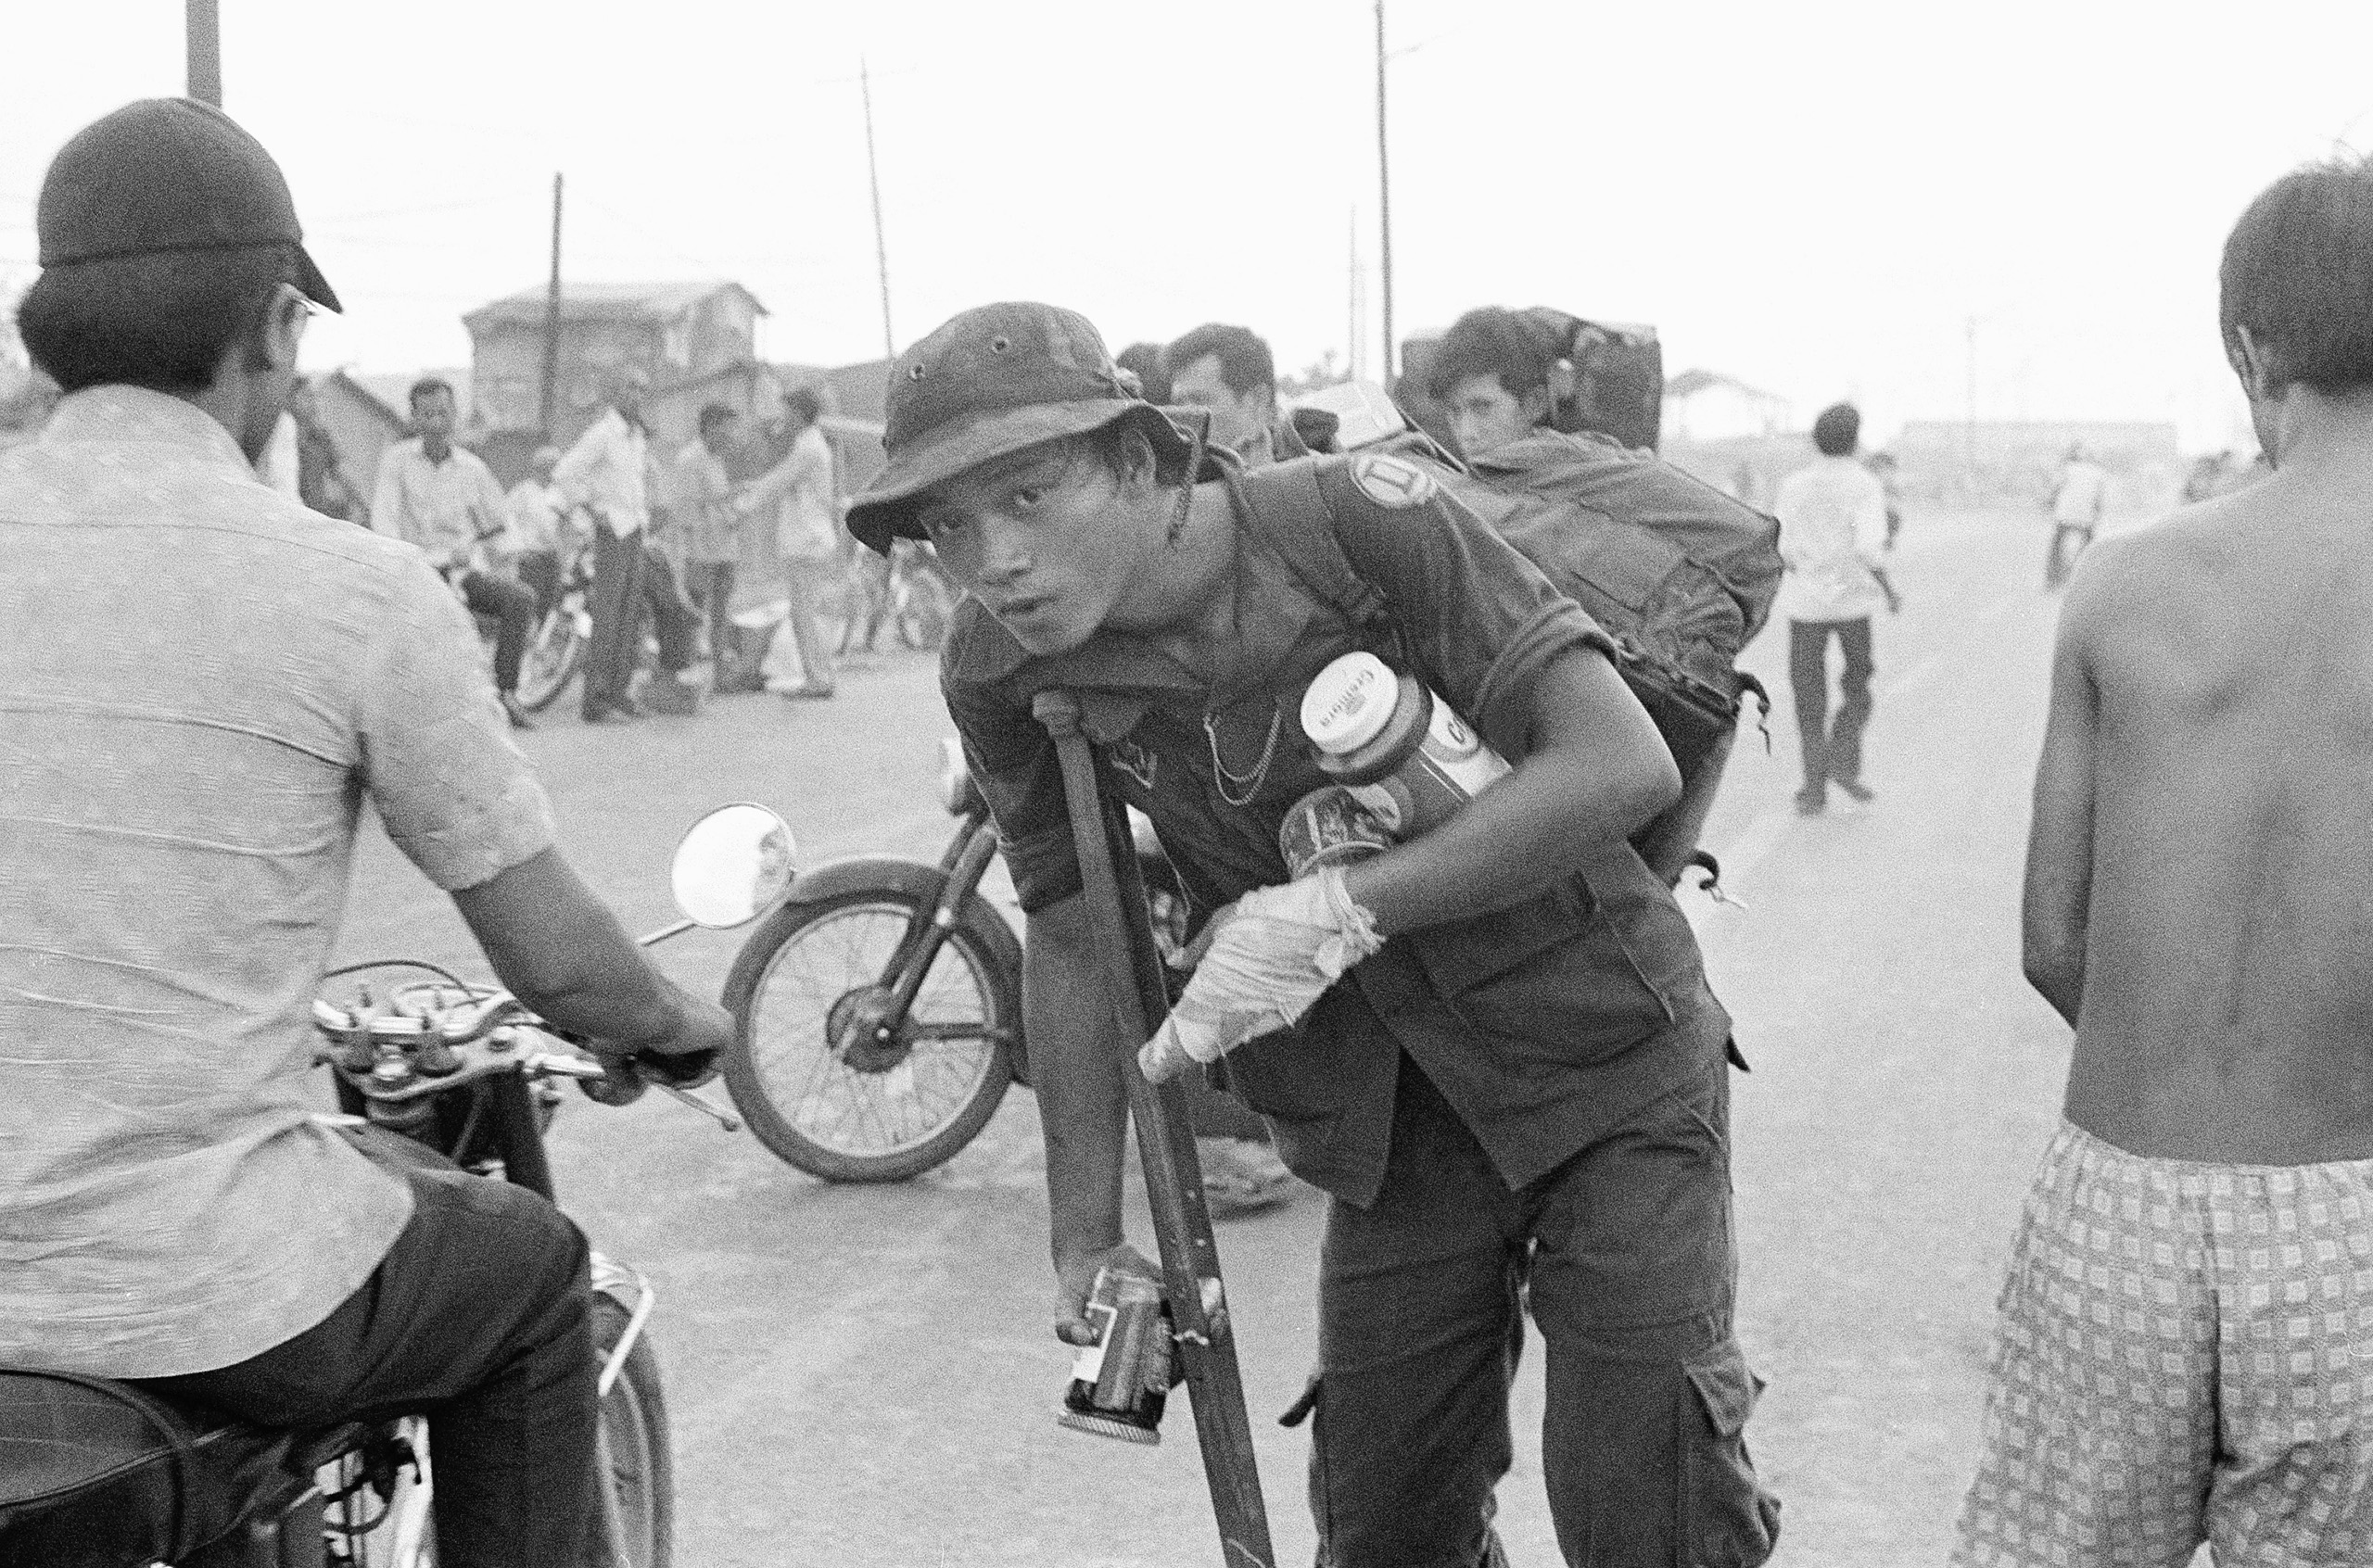 A crippled South Vietnamese war veteran limps away on crutch with food looted from abandoned U.S. installations after the evacuation of Saigon.